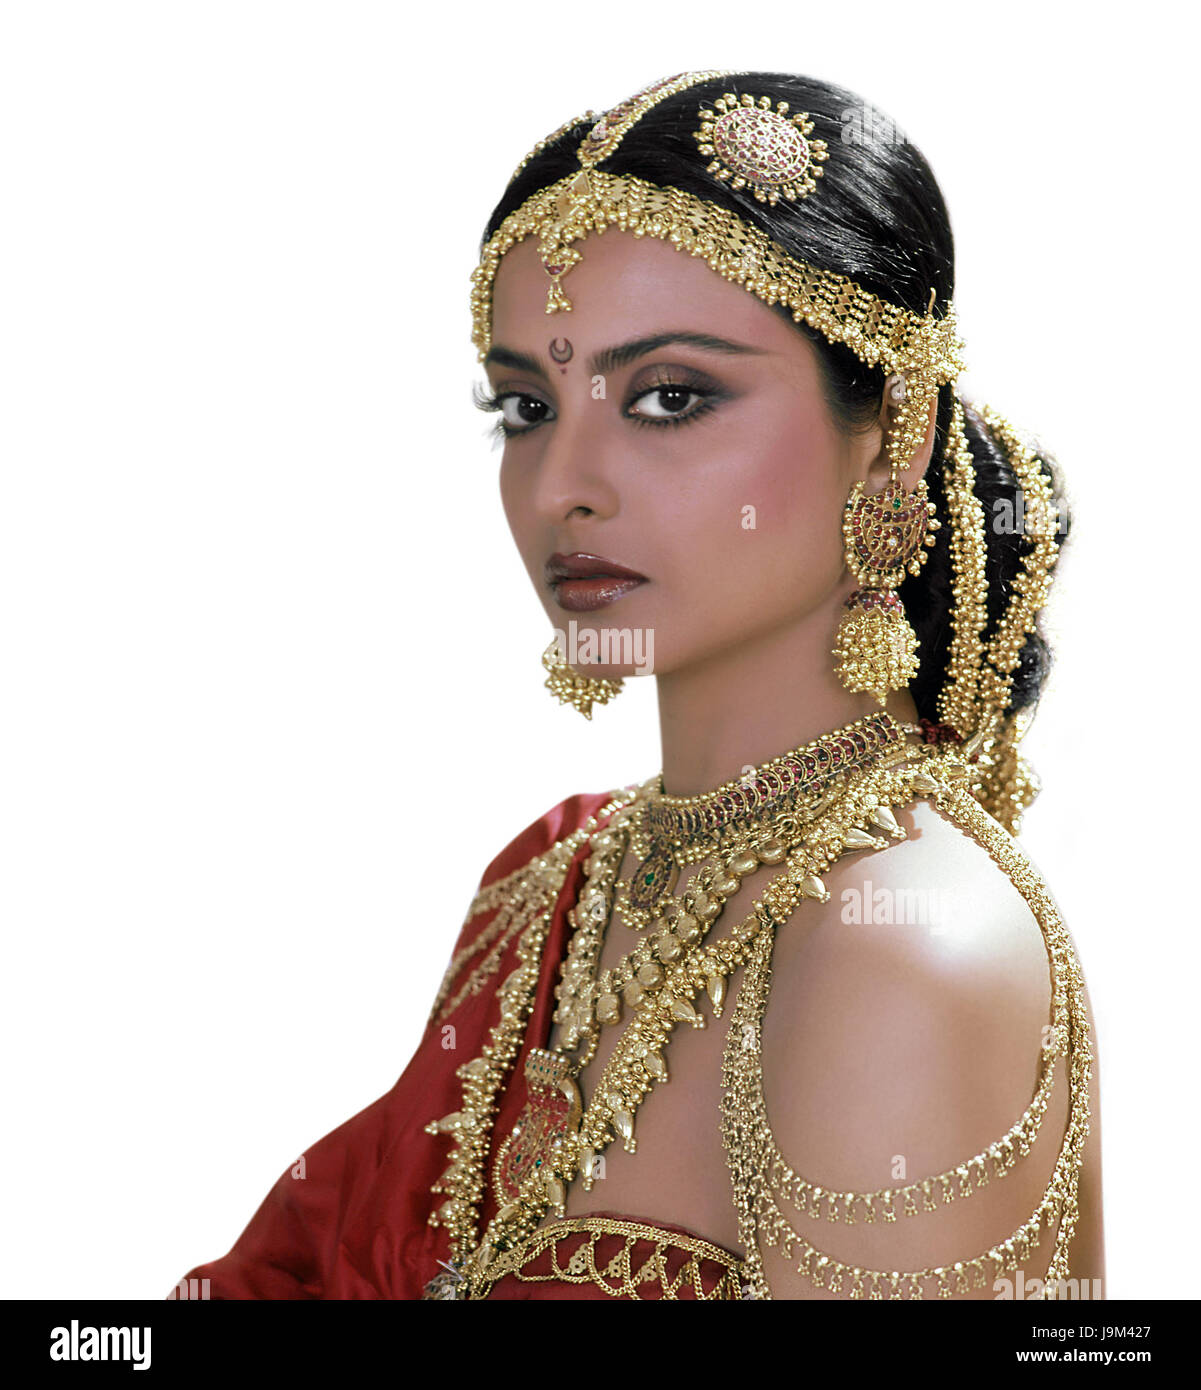 Rekha old bollywood actress suggest